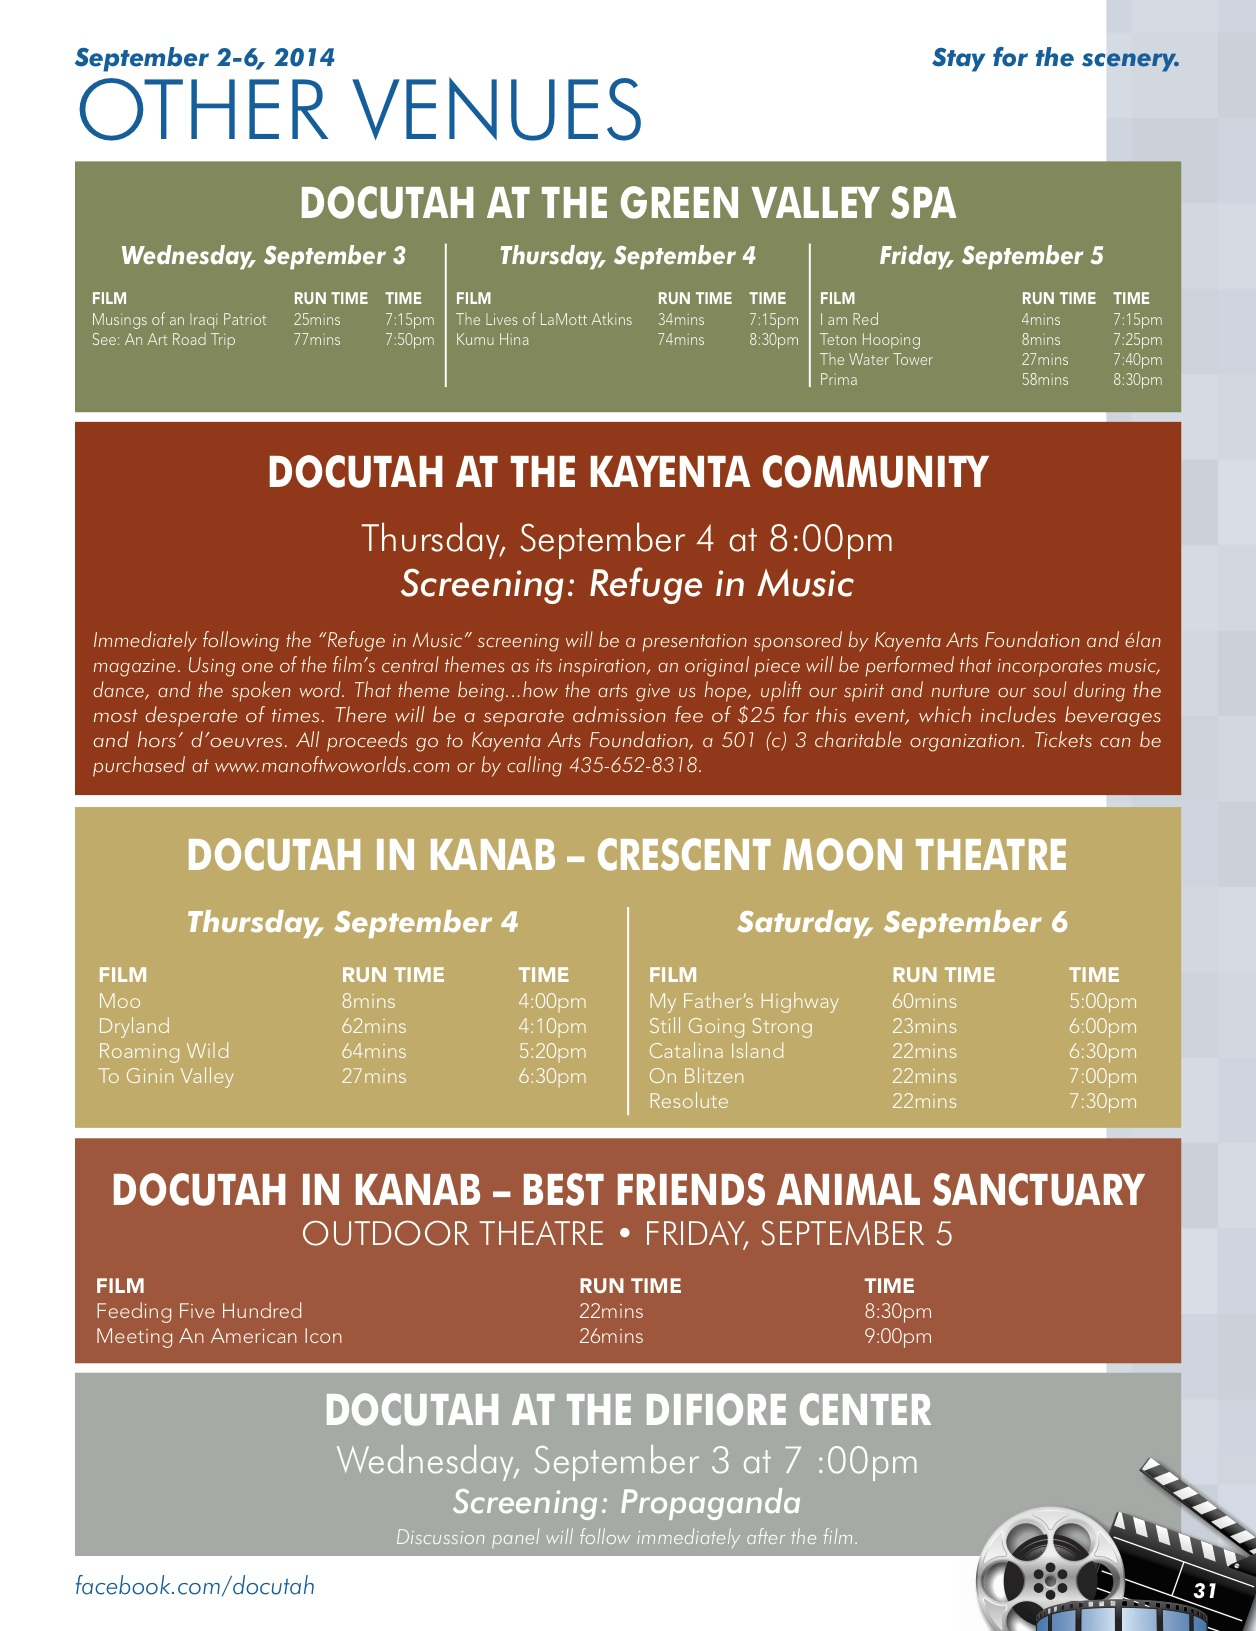 2014_DOCUTAH Festival Guide_Other Venues